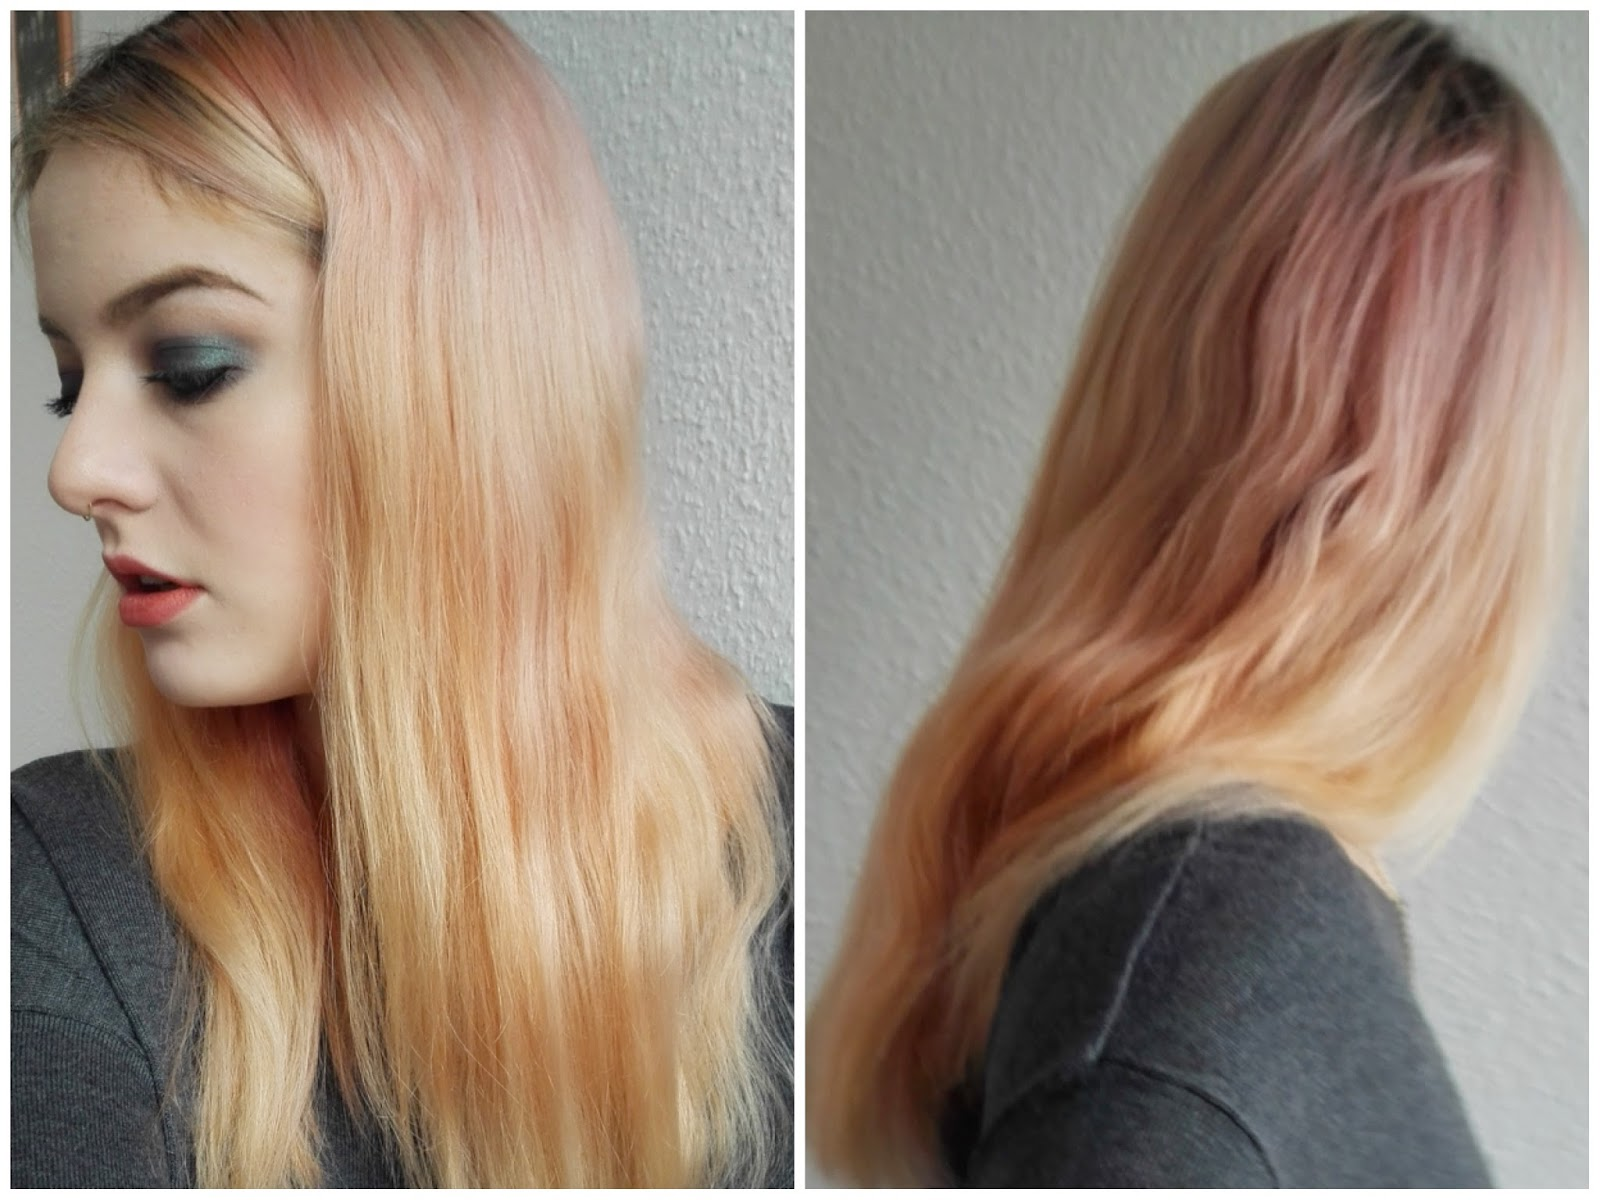 Apricot Farbe Haare